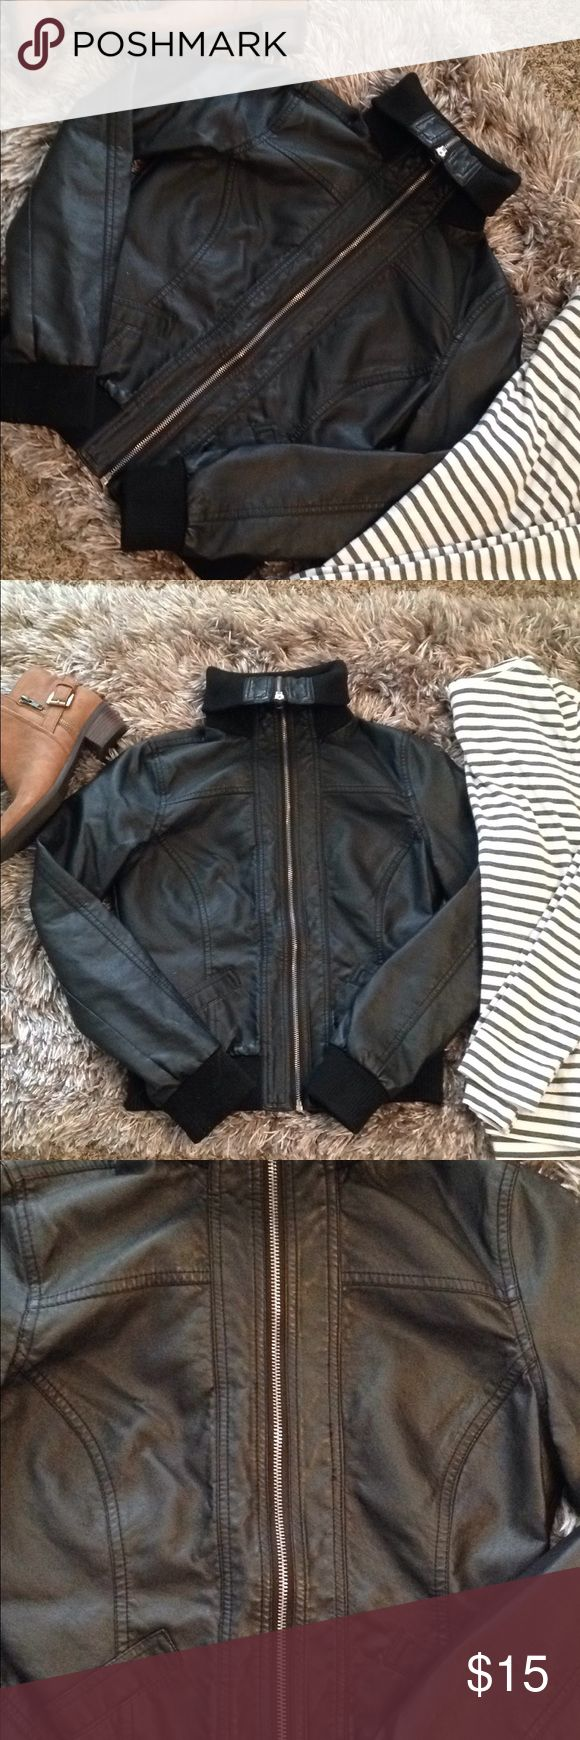 "faux leather jacket ✨reasonable offers are always accepted through the offer button below👇🏻  •size medium. RUNS SMALL. would best fit a size small, so will be listed as a small. refer to measurements below. •brand is FOREVER 21 •perfect condition! never worn! always fit too small 🙁 •slightly cropped (again, see measurements)  MEASUREMENTS: pit to pit: 15"" length: 19""  ❣️sorry, NO TRADES! Forever 21 Jackets & Coats"